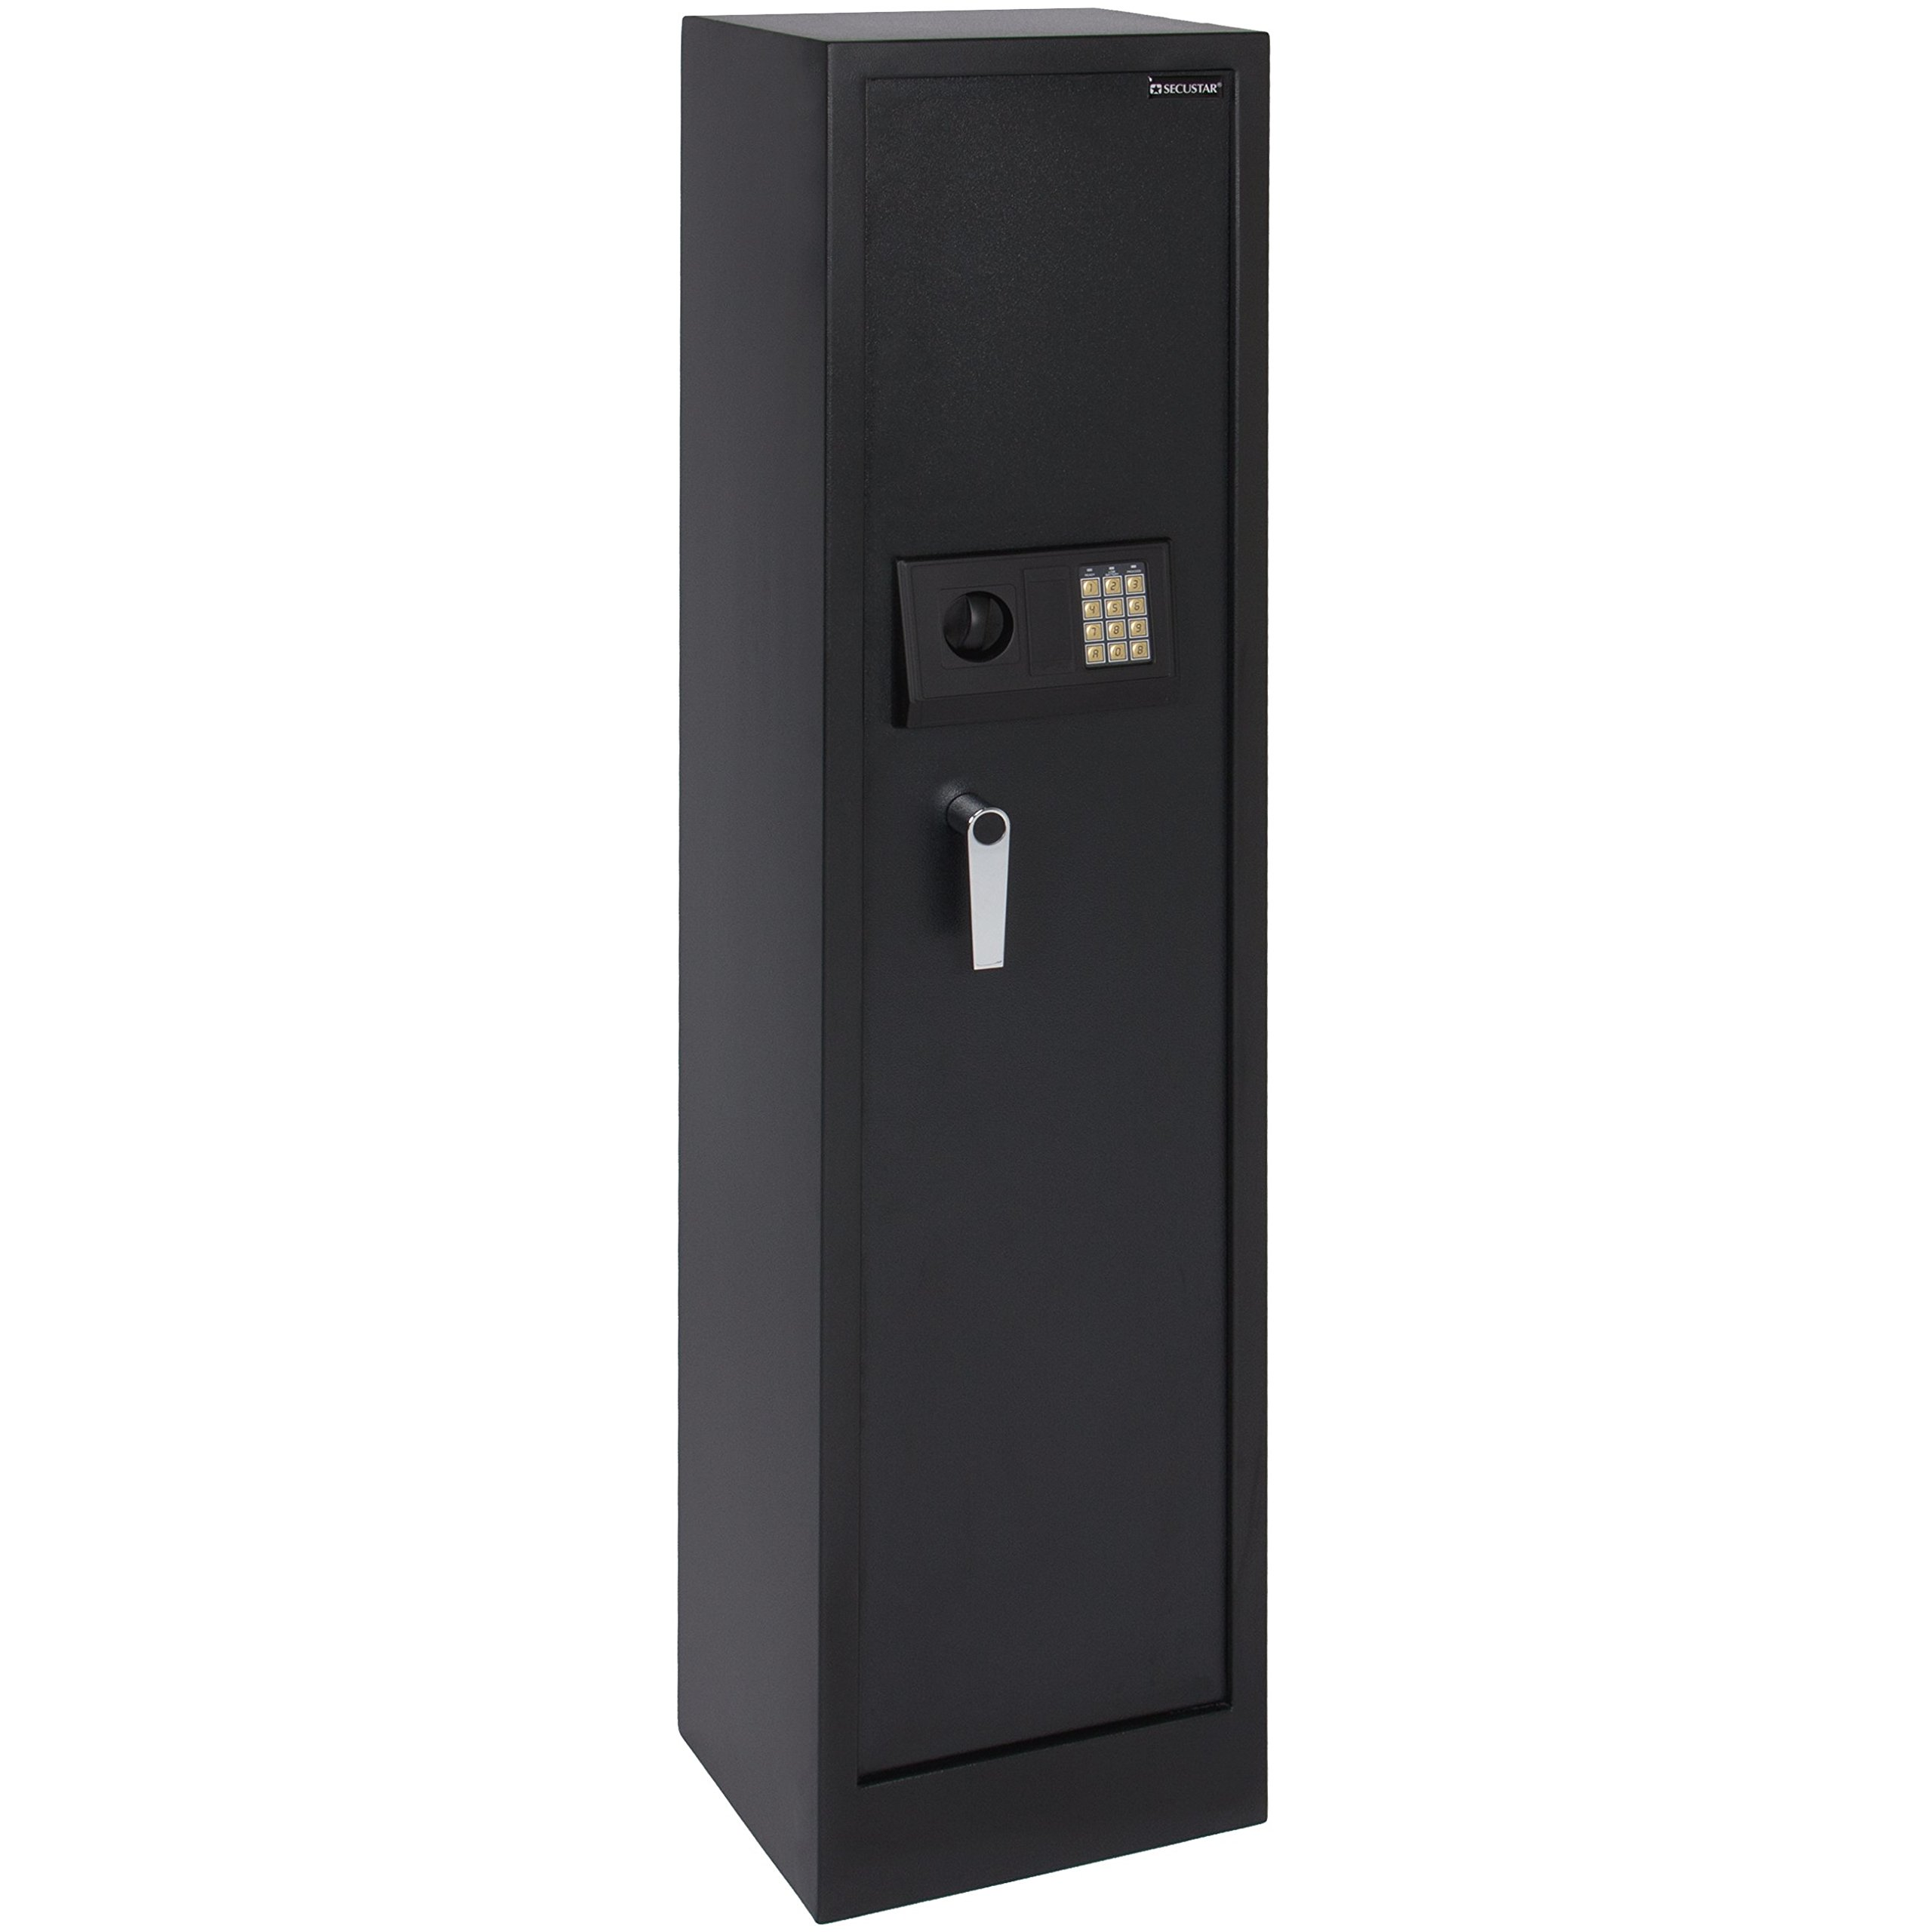 BCP Large 5 Rifle Digital Gun Safe Electronic Lock Storage Steel Cabinet Firearm by Best Choice Products